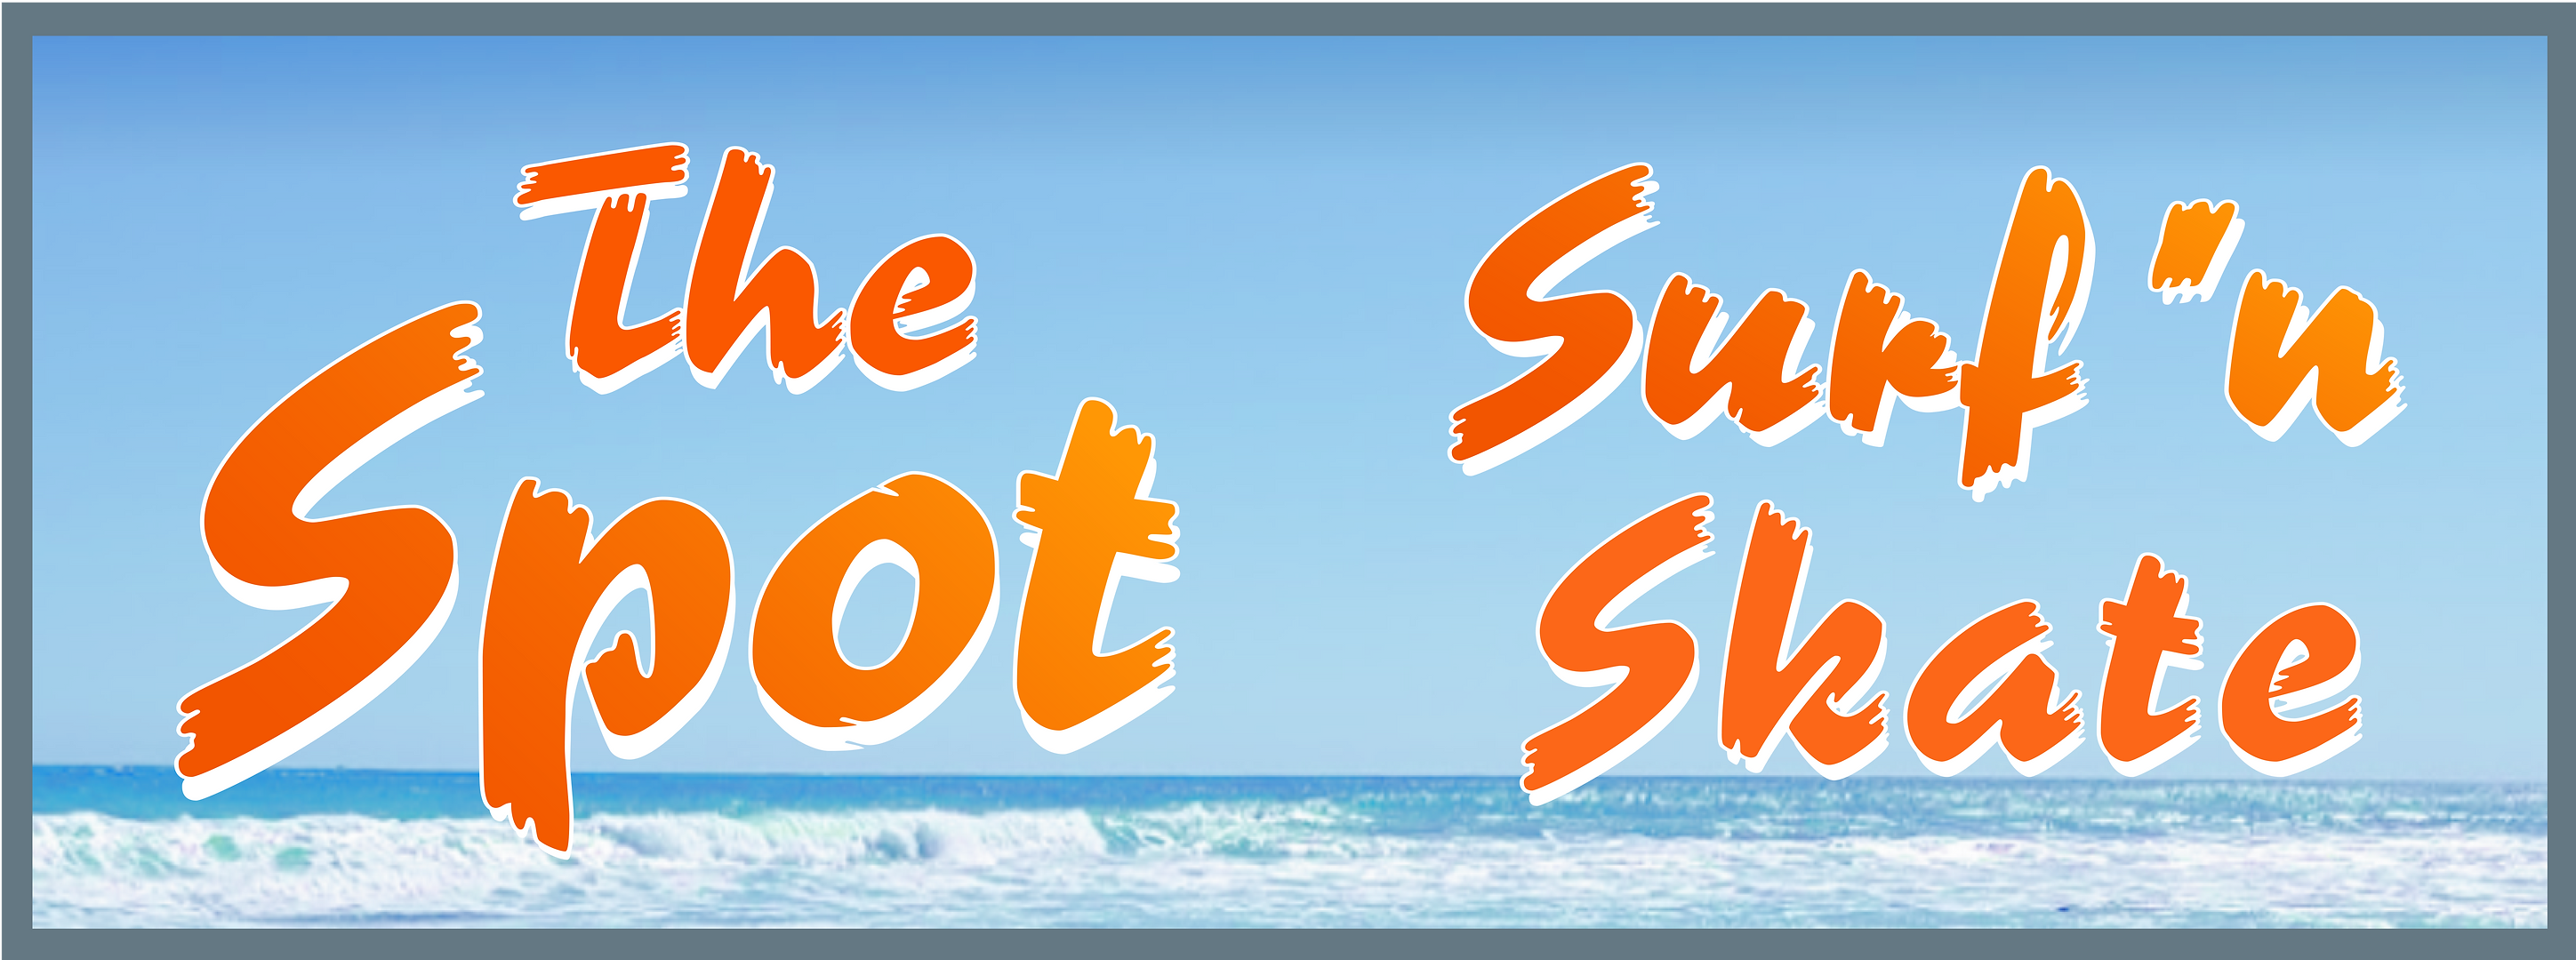 The Spot Surf & Skate.png